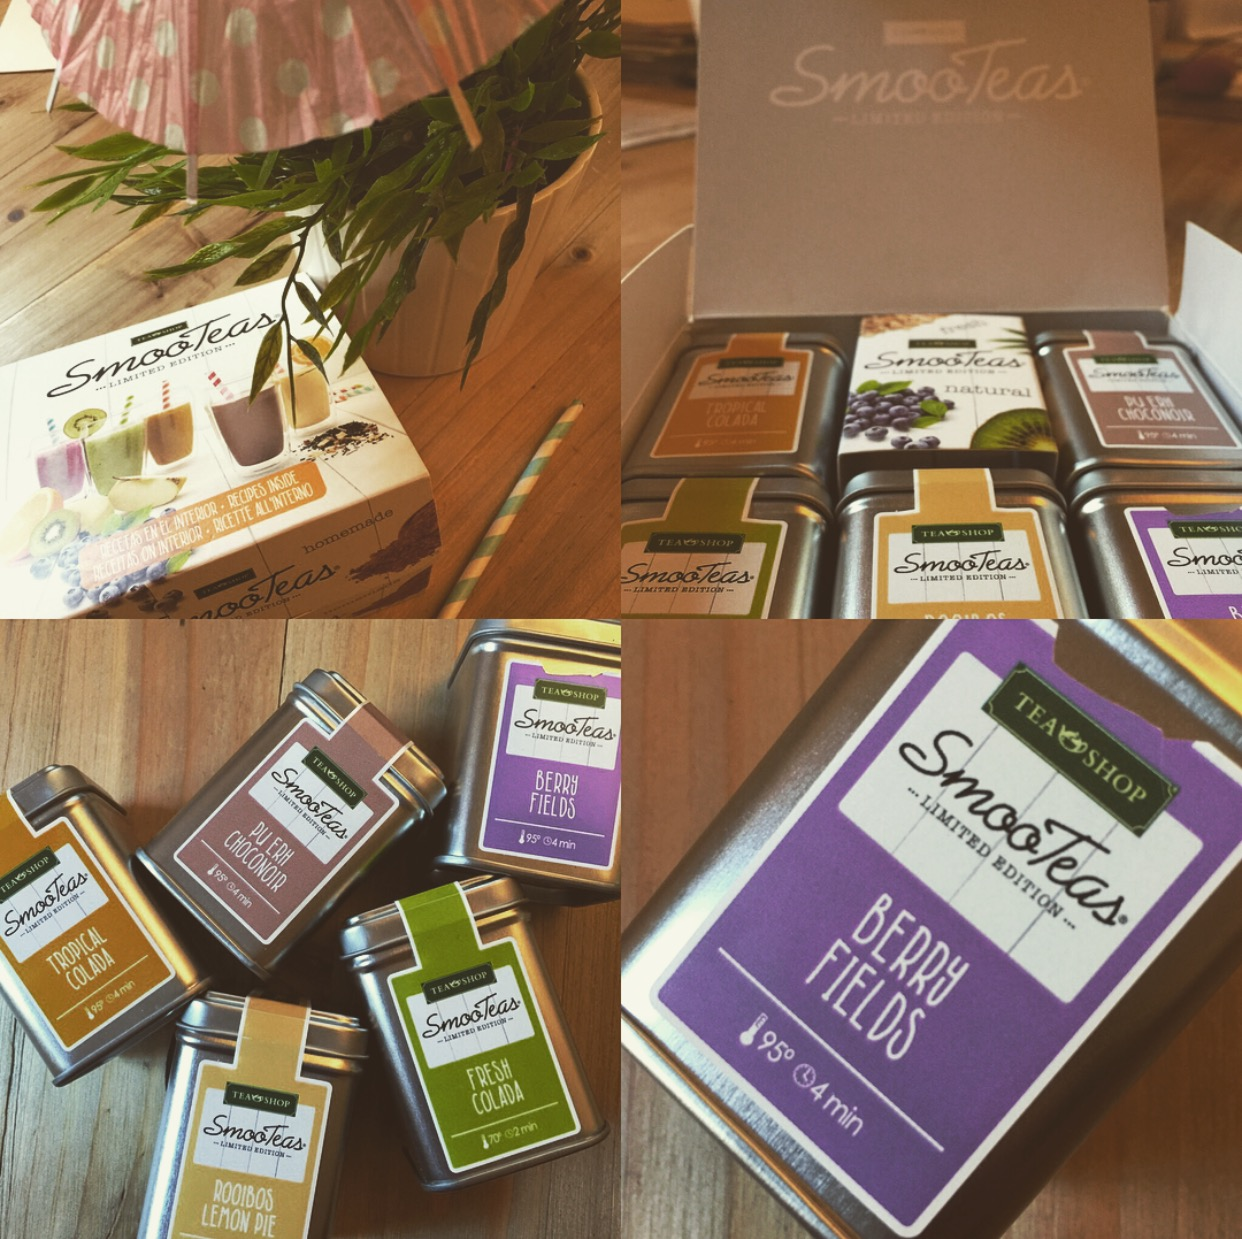 ¿Smoothies o Smooteas de TeaShop?